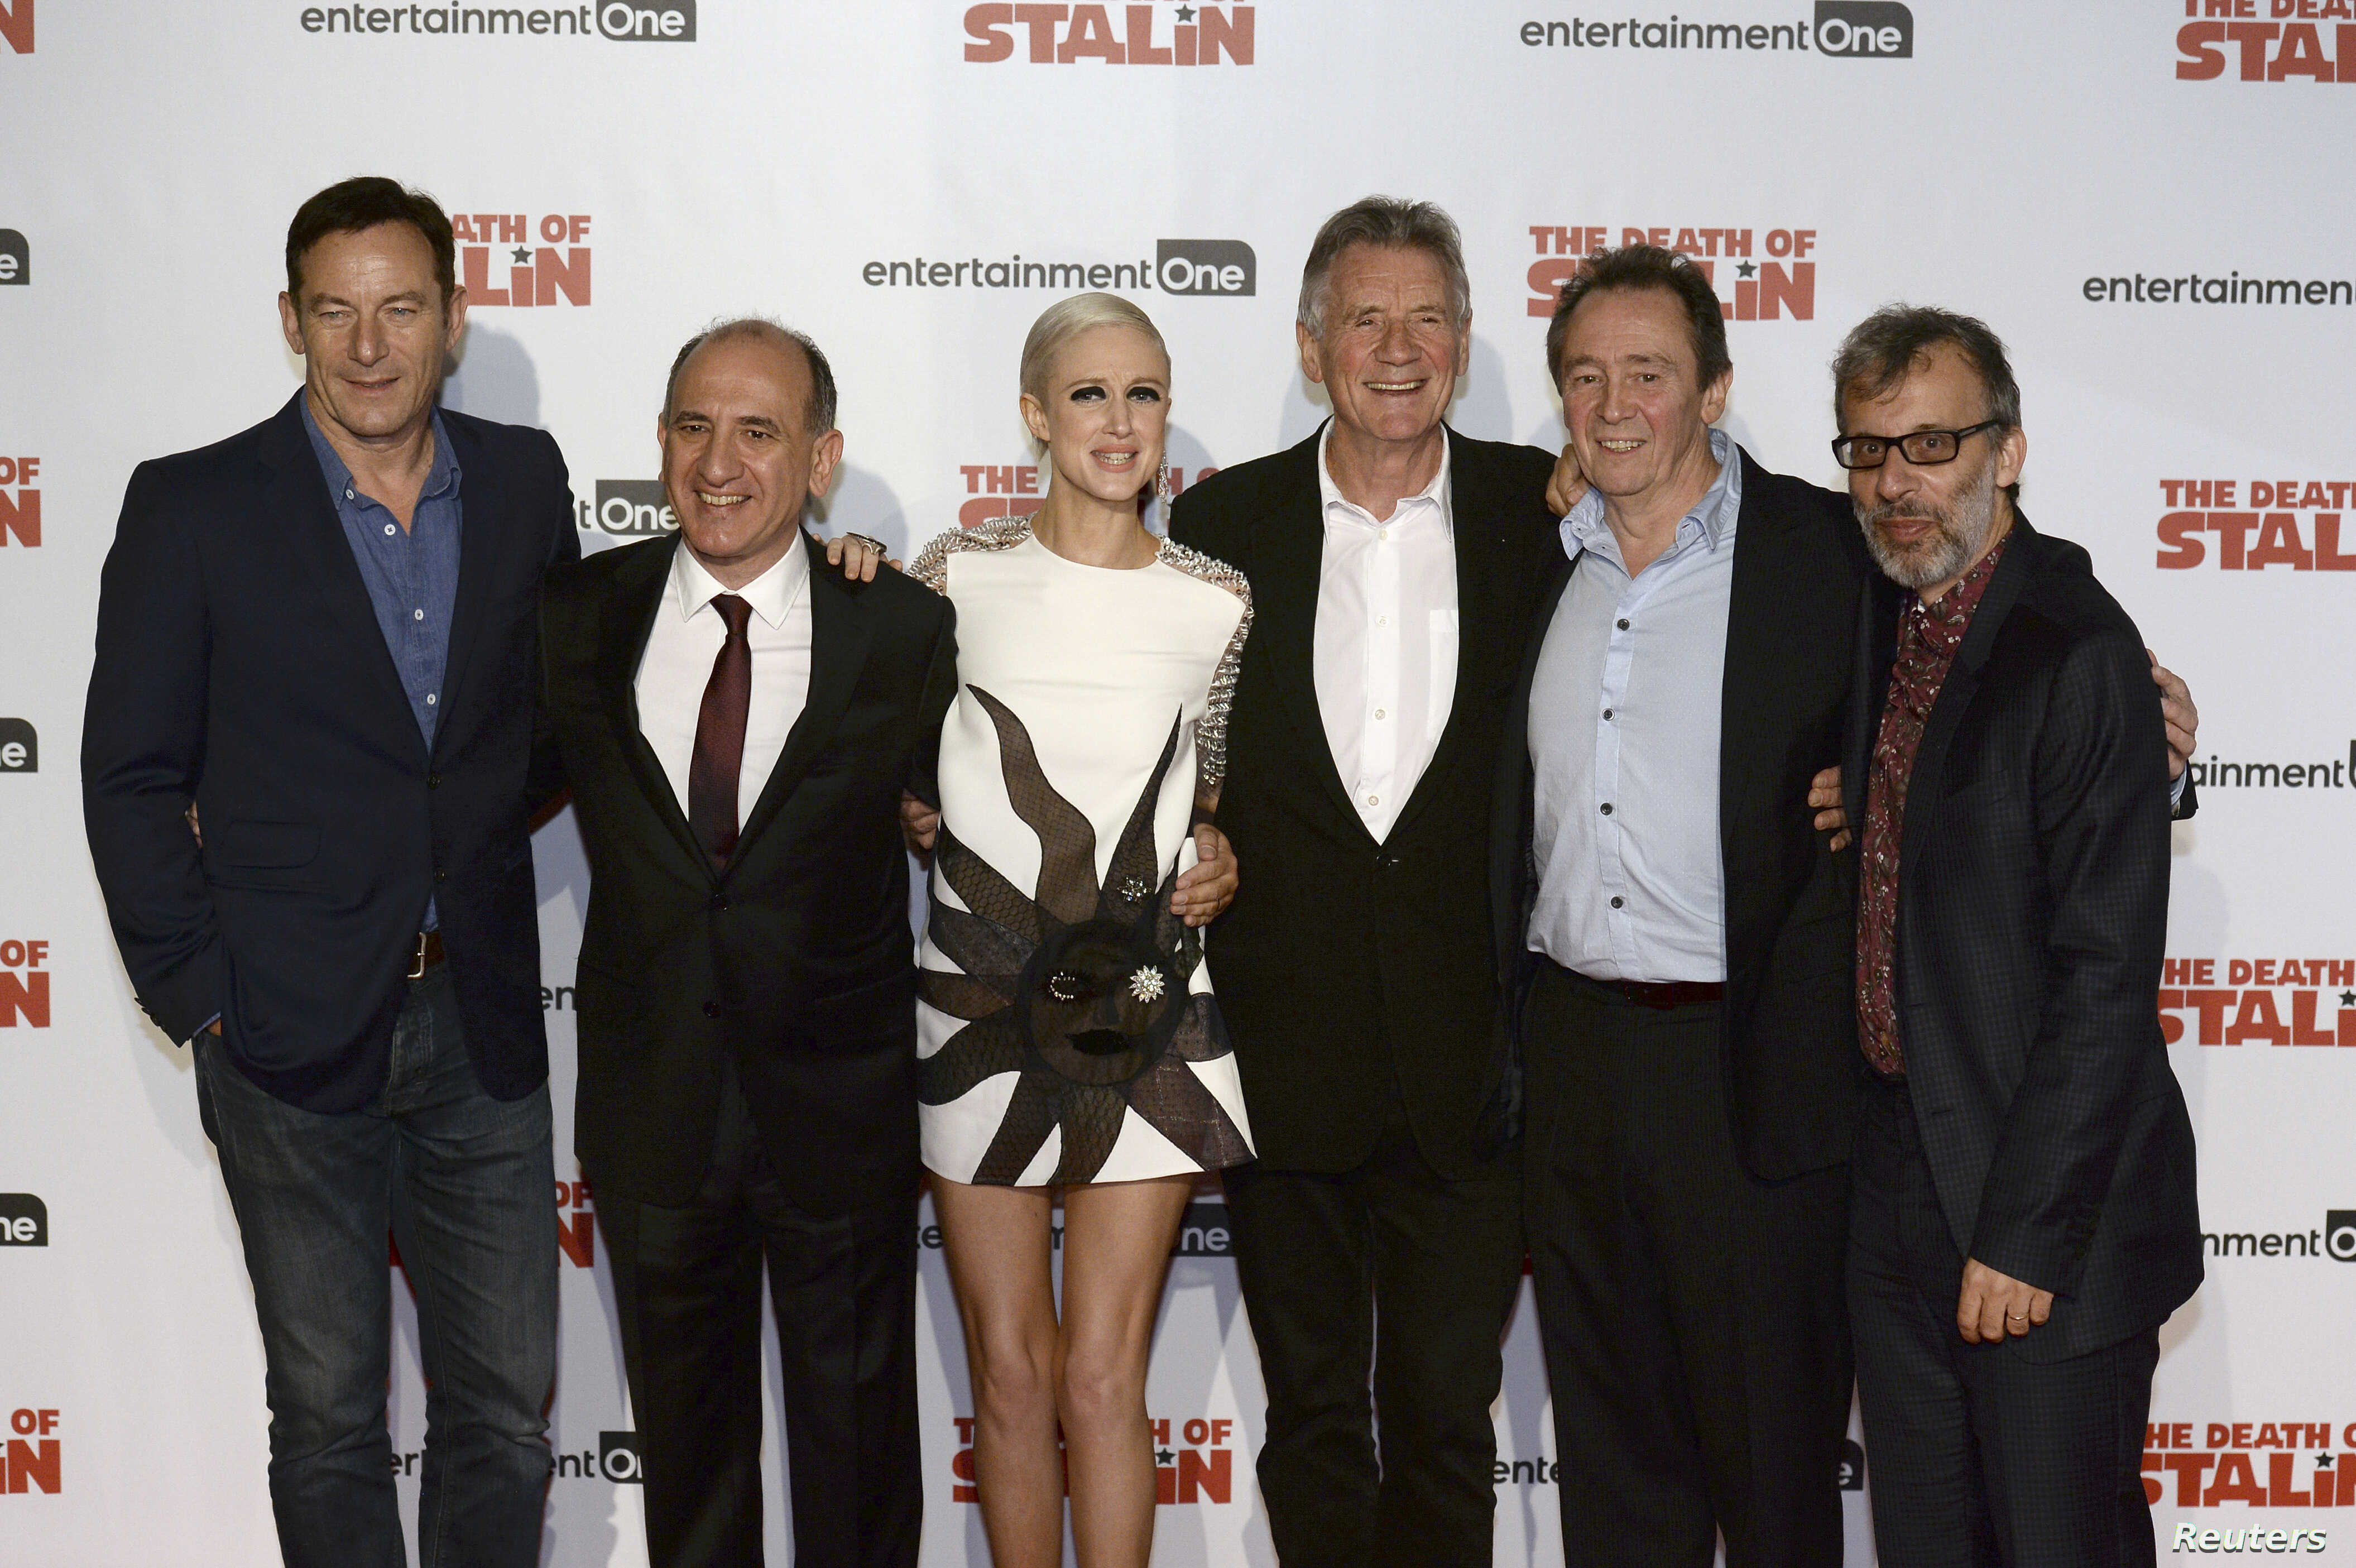 Actor Jason Isaacs, writer and director Armando Iannucci, actors Andrea Riseborough, Michael Palin, Paul Whitehouse and David Schneider  at UK premiere of 'The Death of Stalin', in London, Oct. 17, 2017.